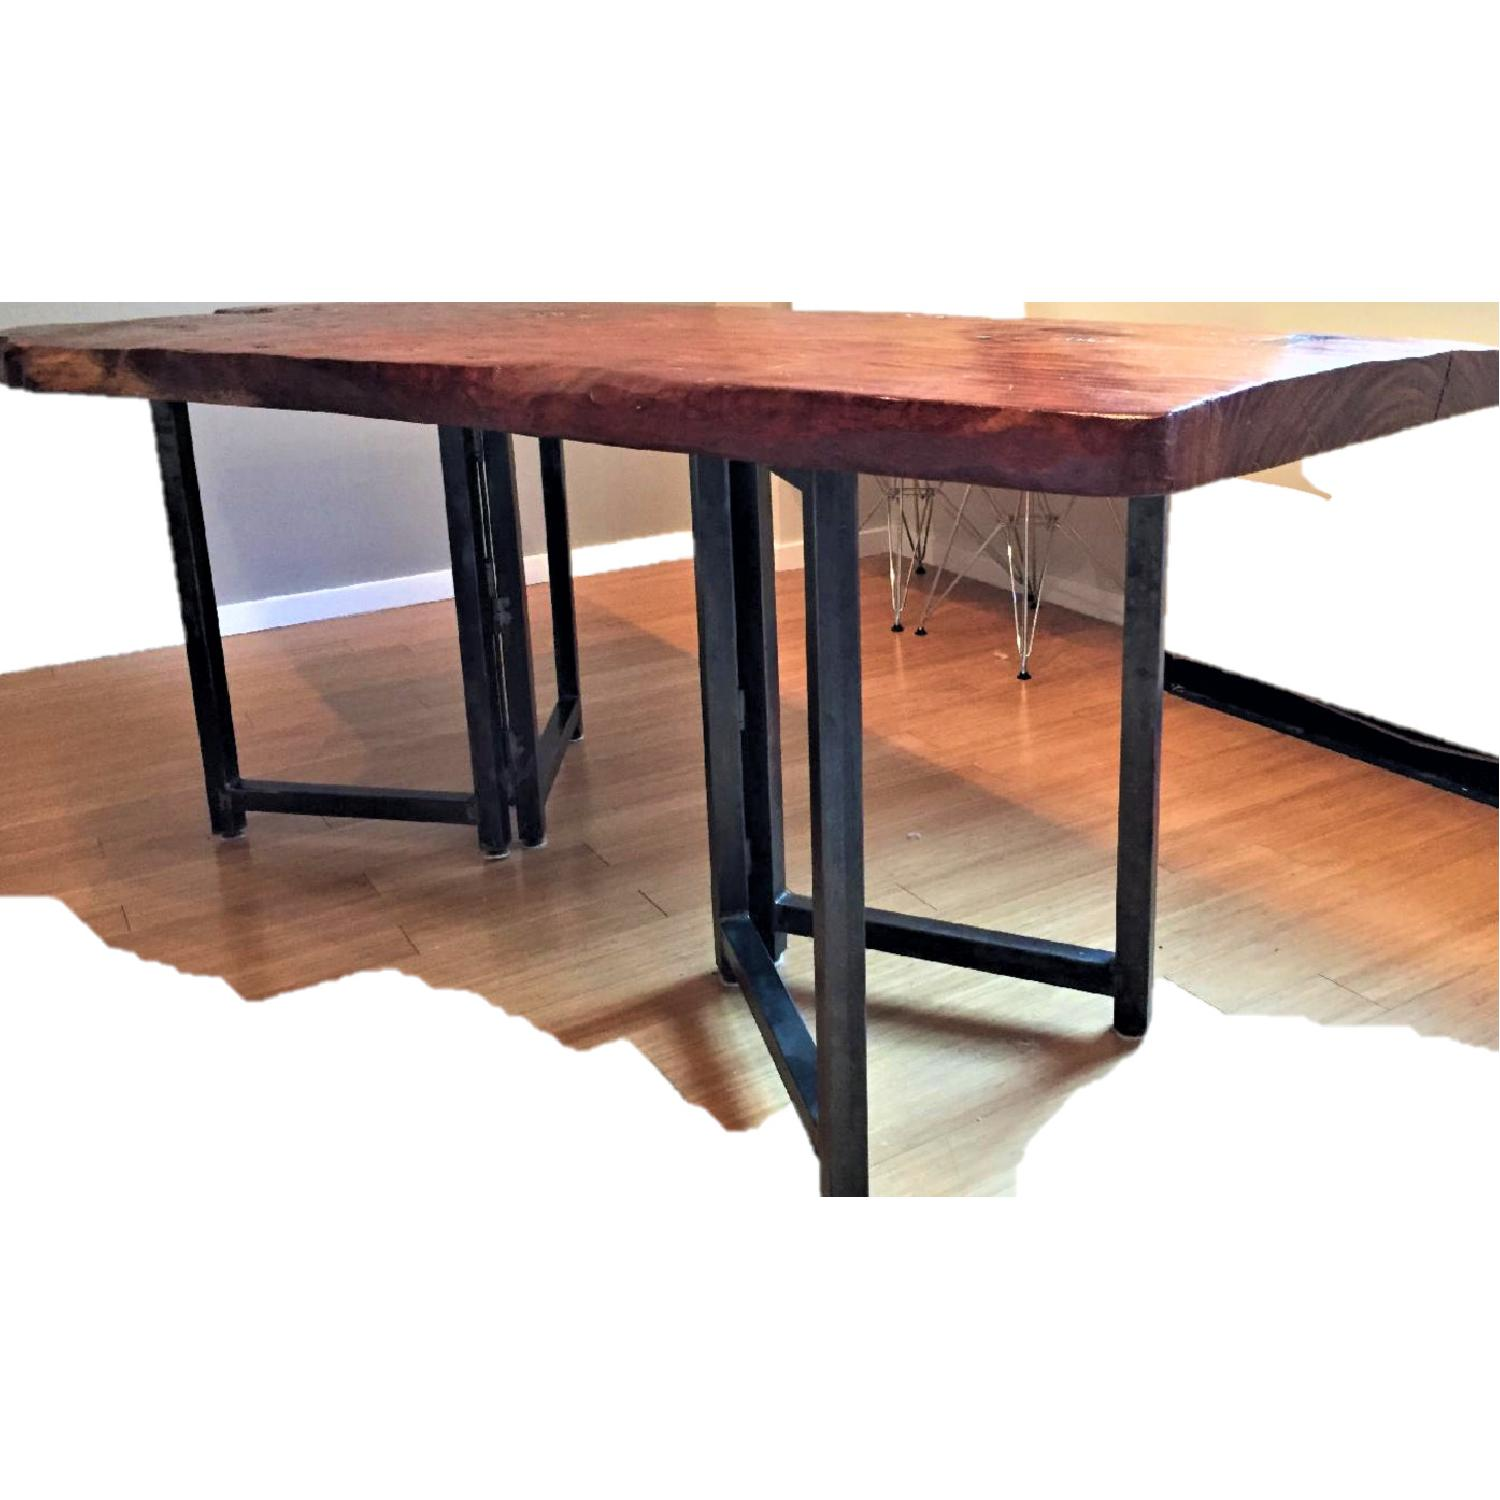 From The Source Hand-Crafted Teak Slab Dining Table - image-6